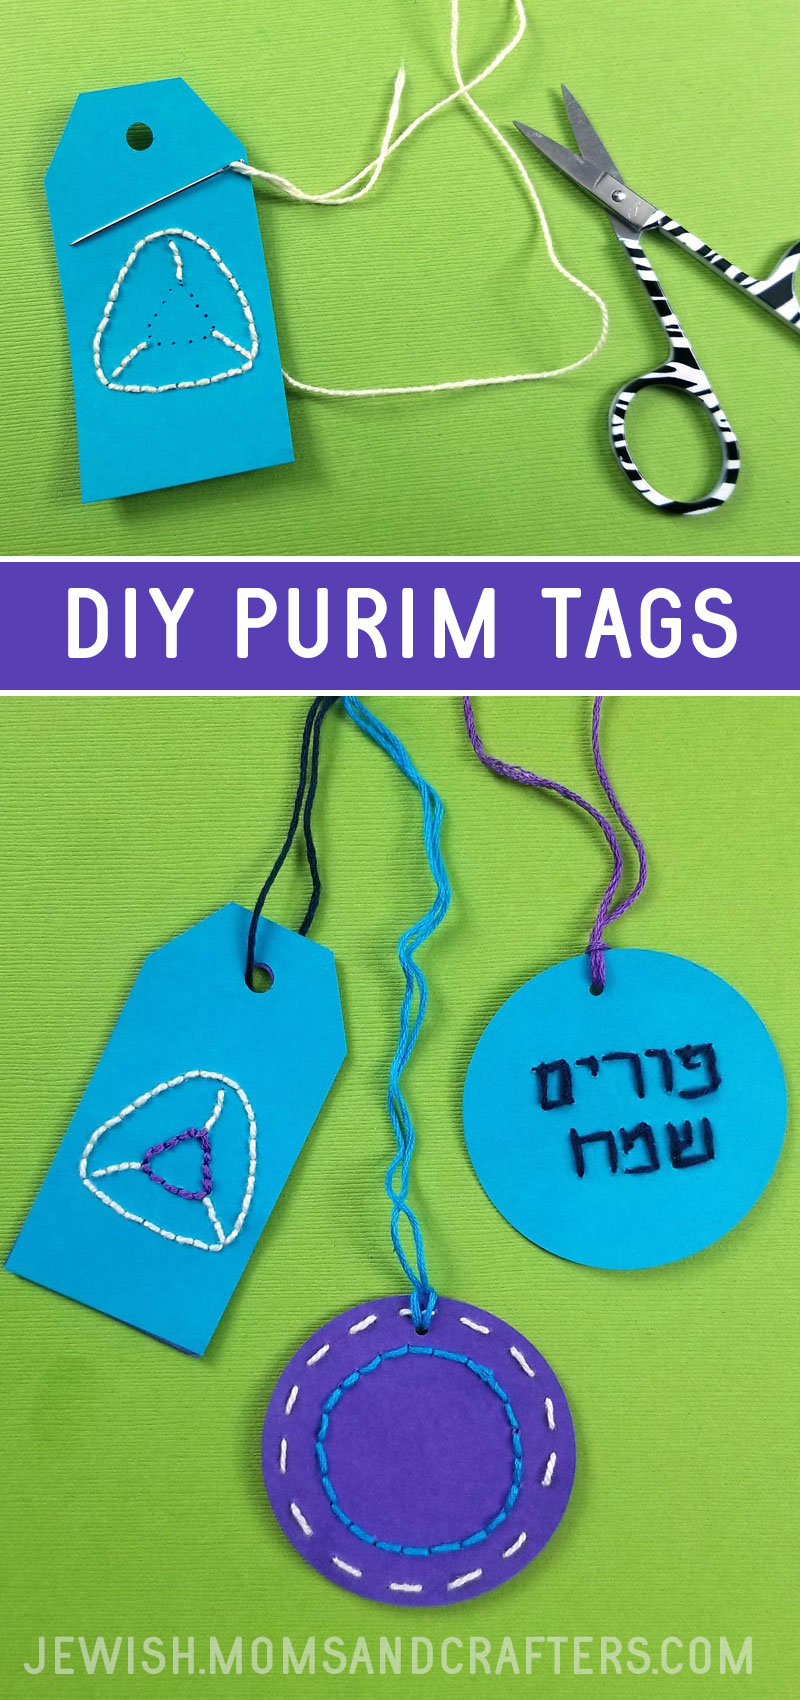 Craft your own DIY Purim tags to use instead of labels for your Mishloach Manot - you can use this on any theme package!